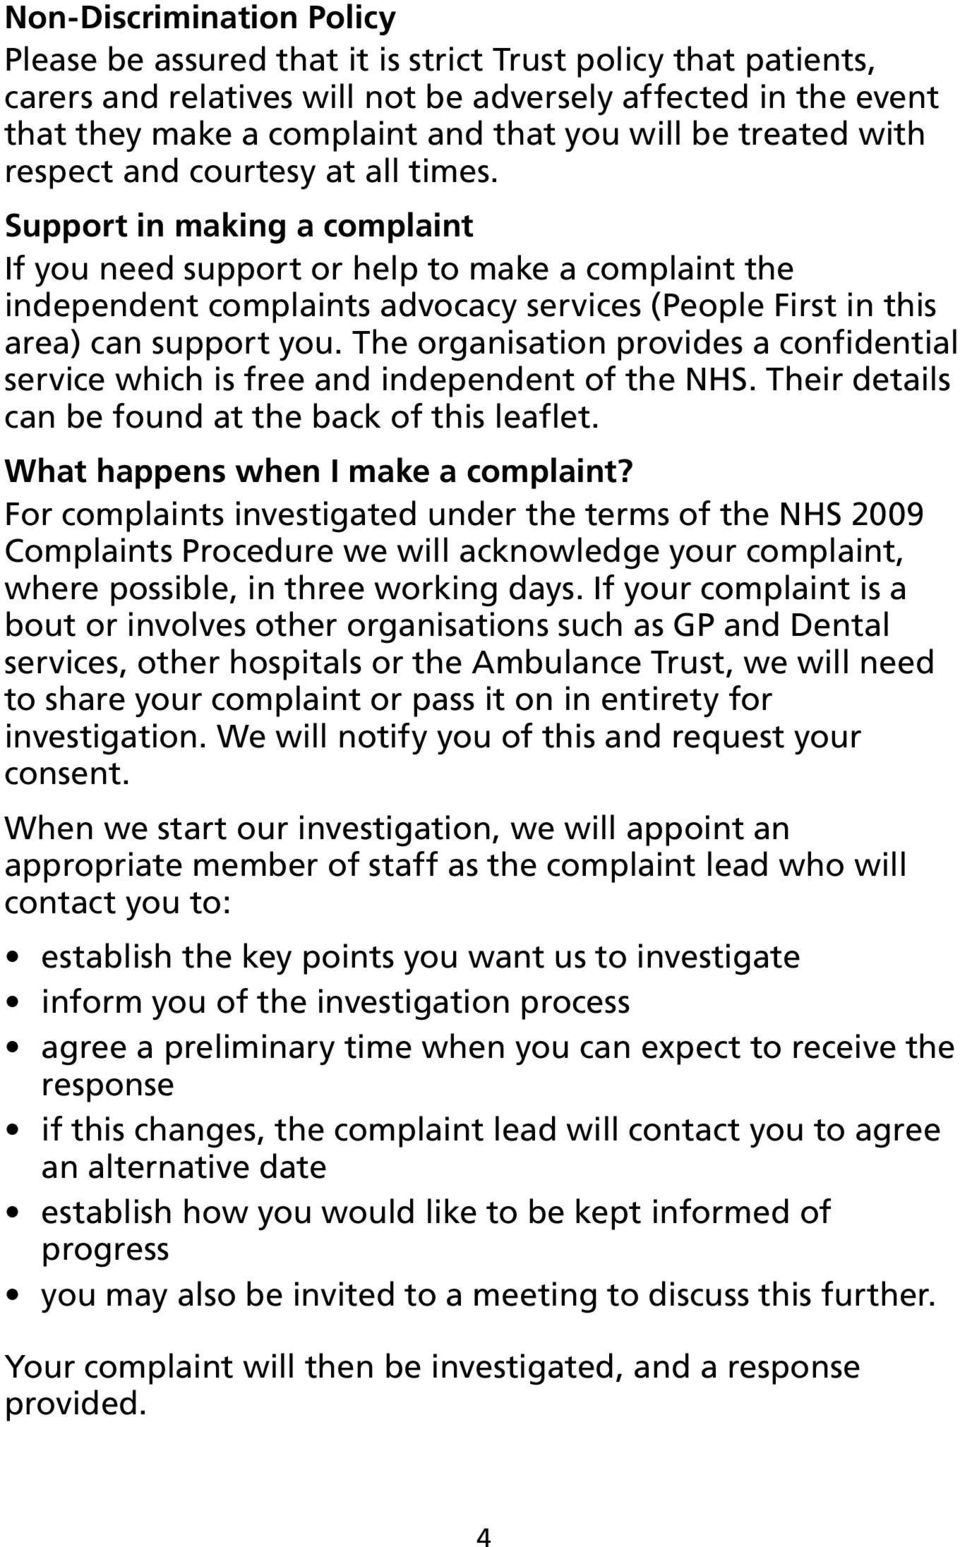 Support in making a complaint If you need support or help to make a complaint the independent complaints advocacy services (People First in this area) can support you.